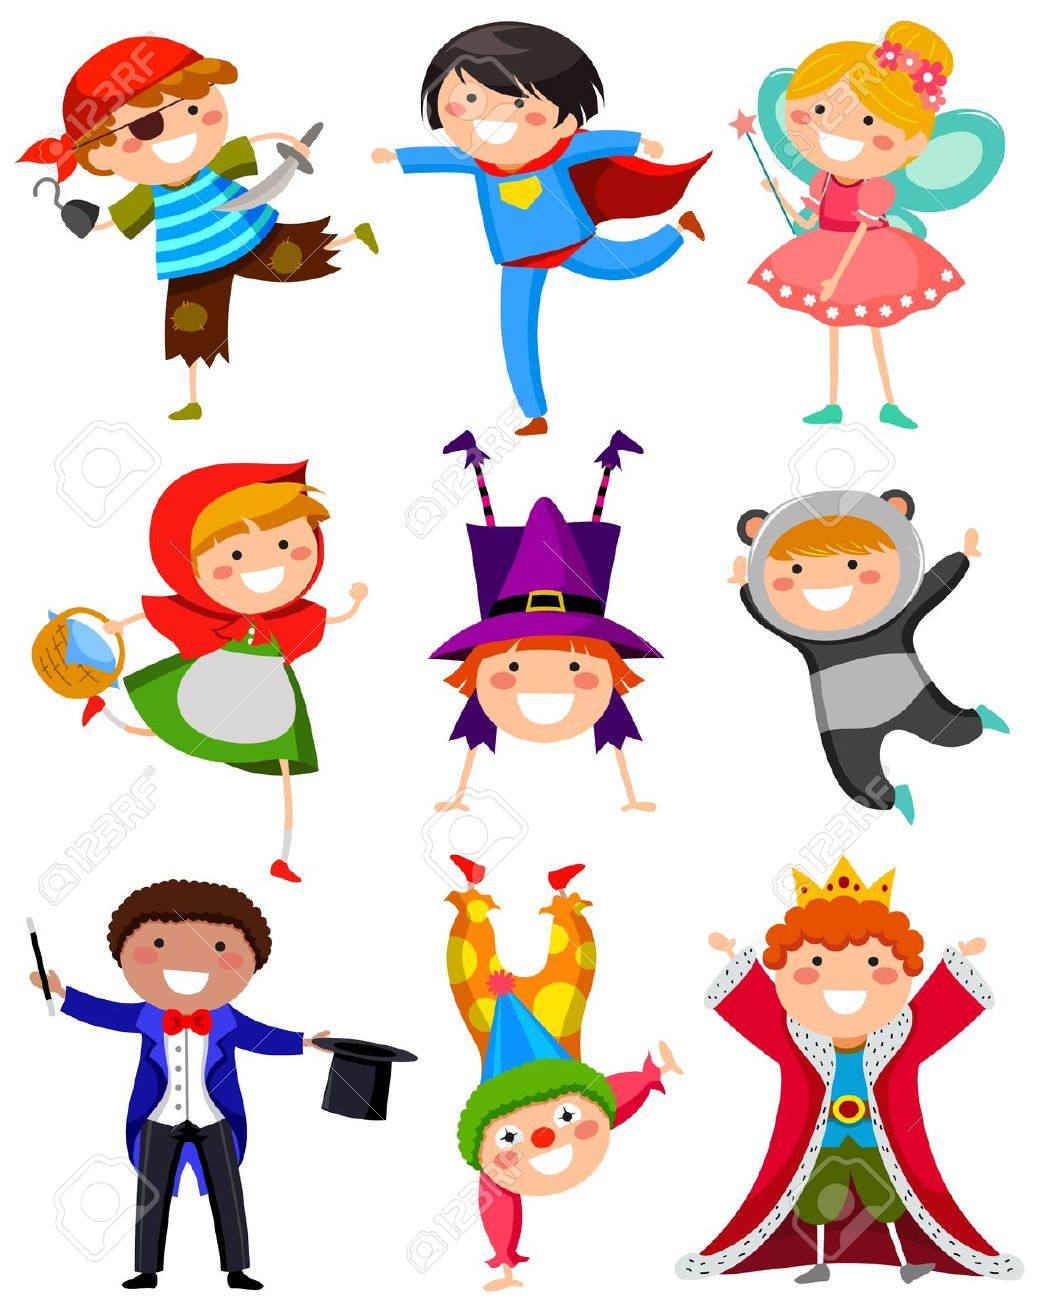 Dress up costumes clipart.